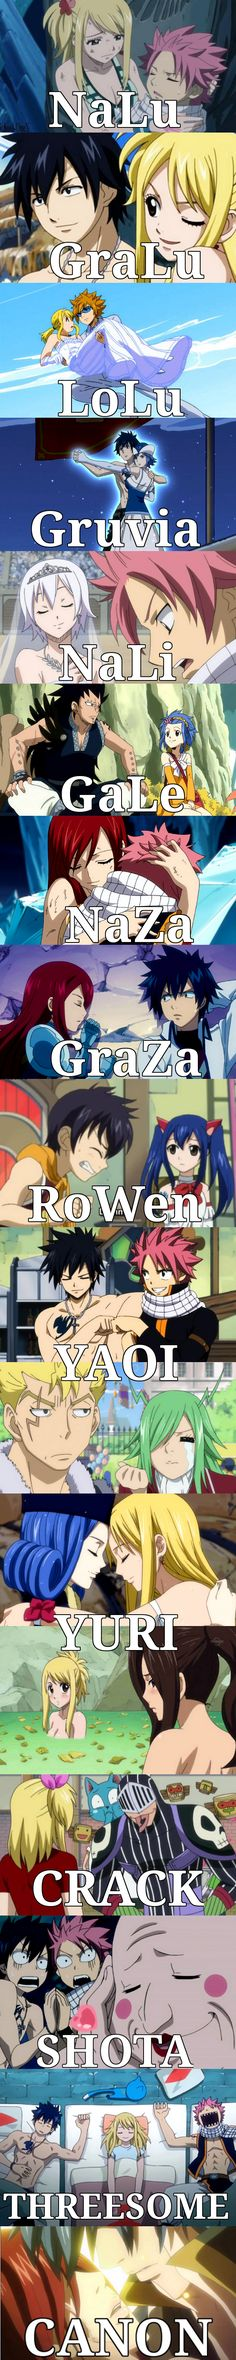 Fairy Tail Shipping by Rhov on DeviantArt